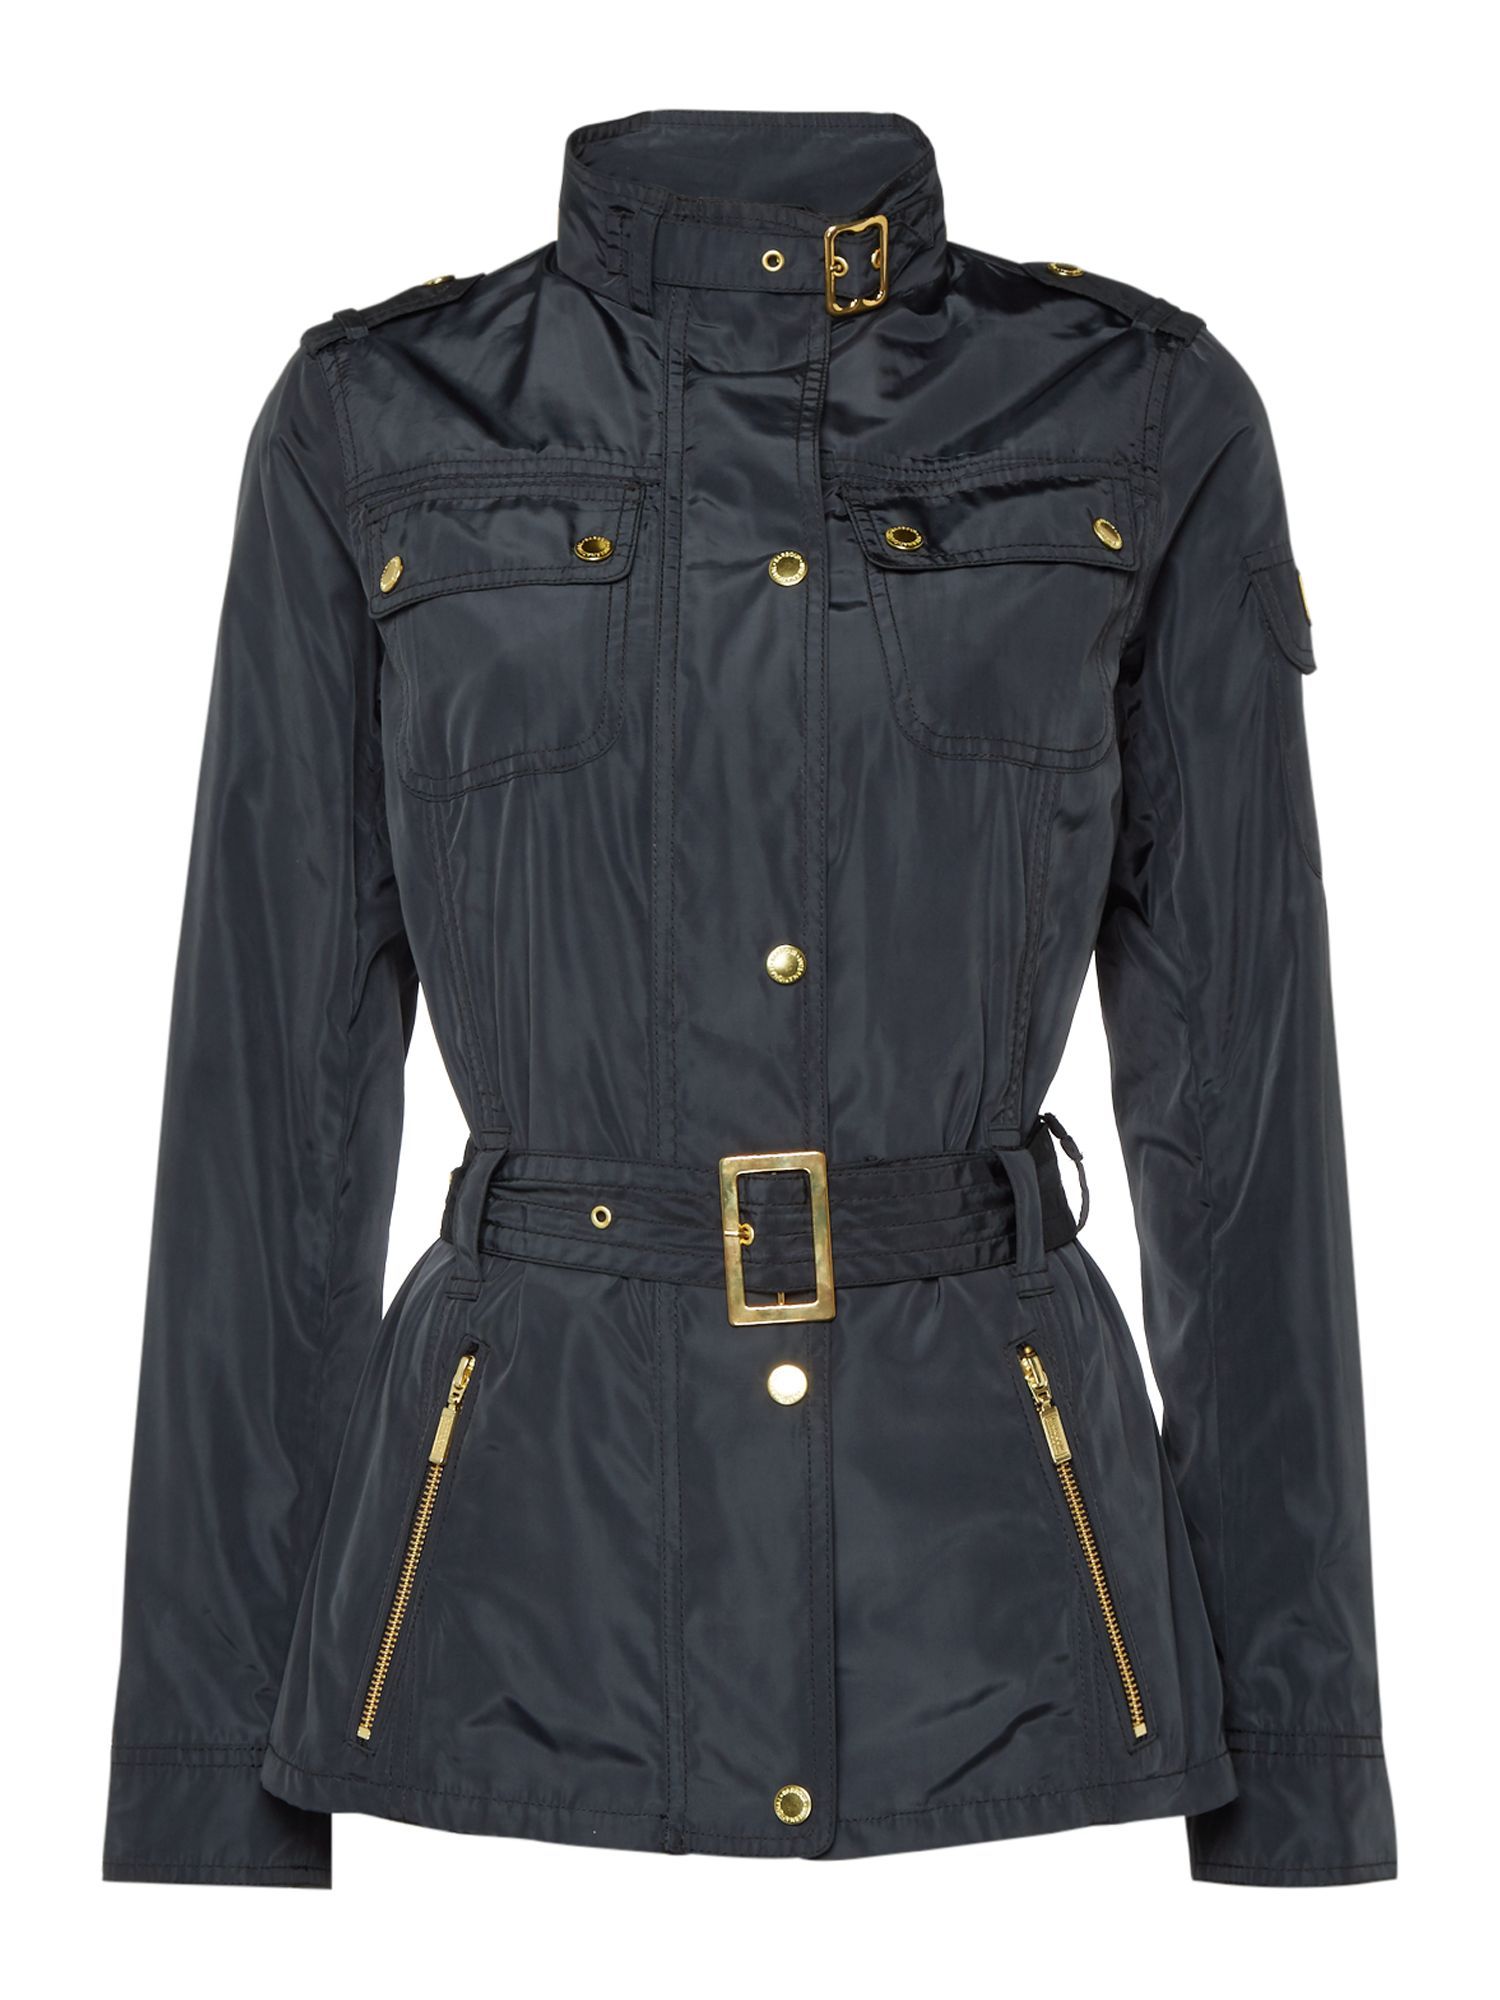 Barbour Barbour International, Black